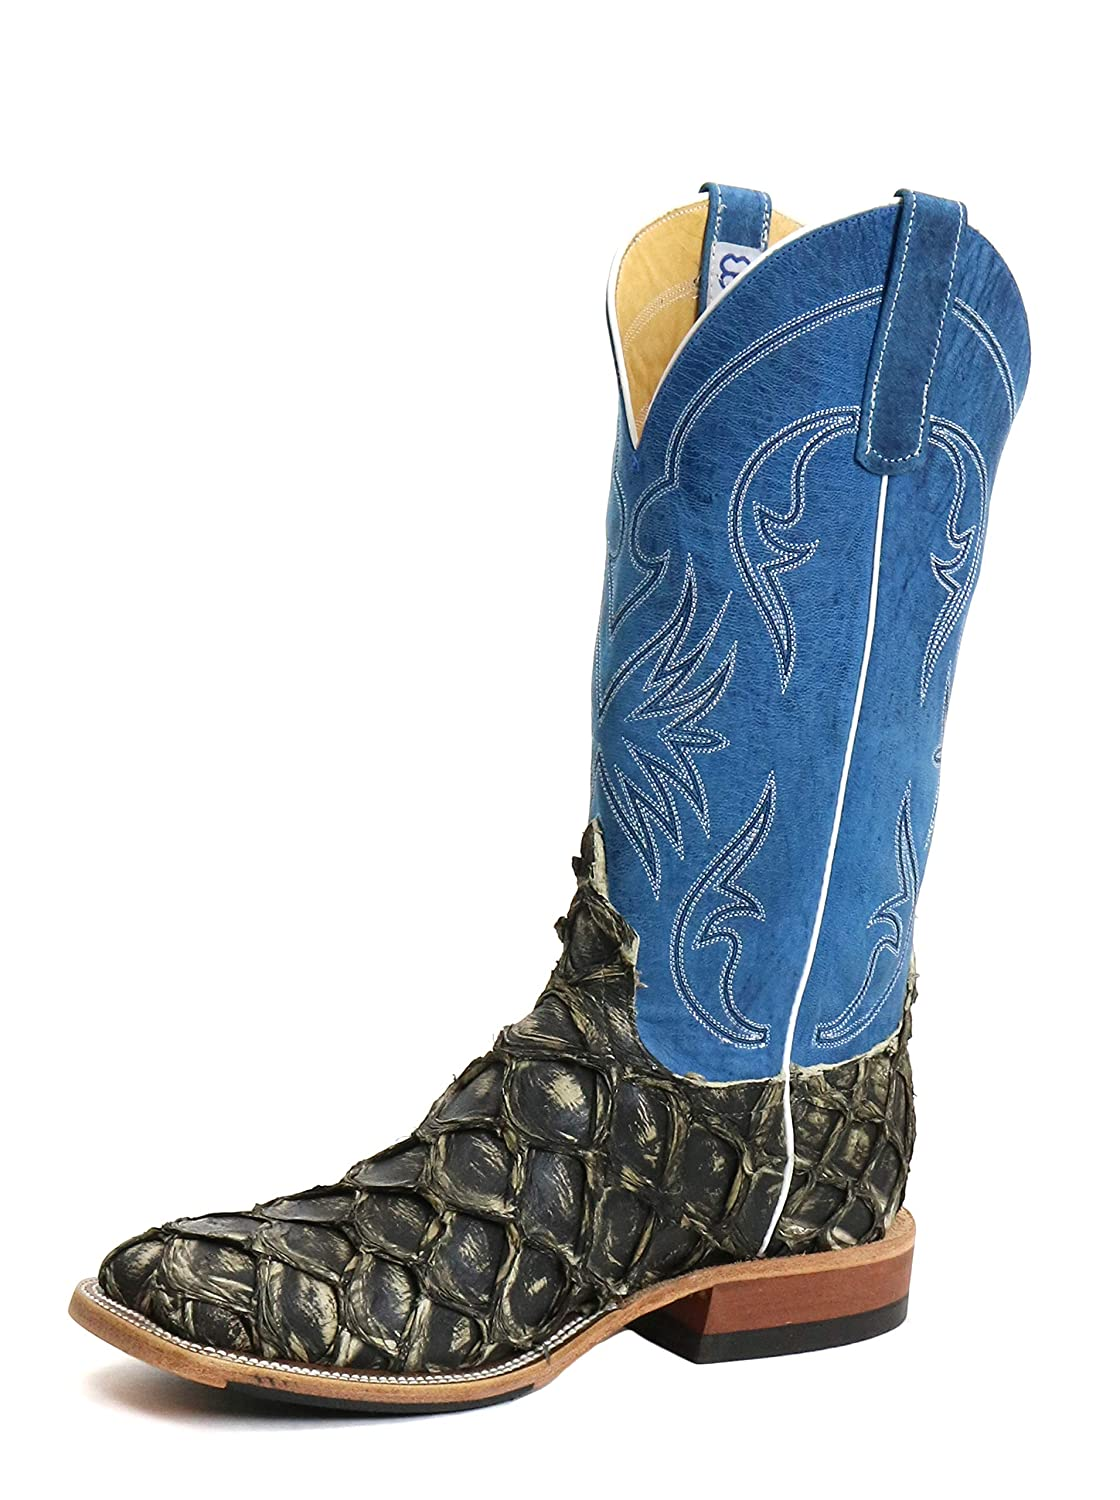 c053a13cd4681 Anderson bean mens brown raven big bass danube mad dog boots western jpg  1120x1500 Anderson bean